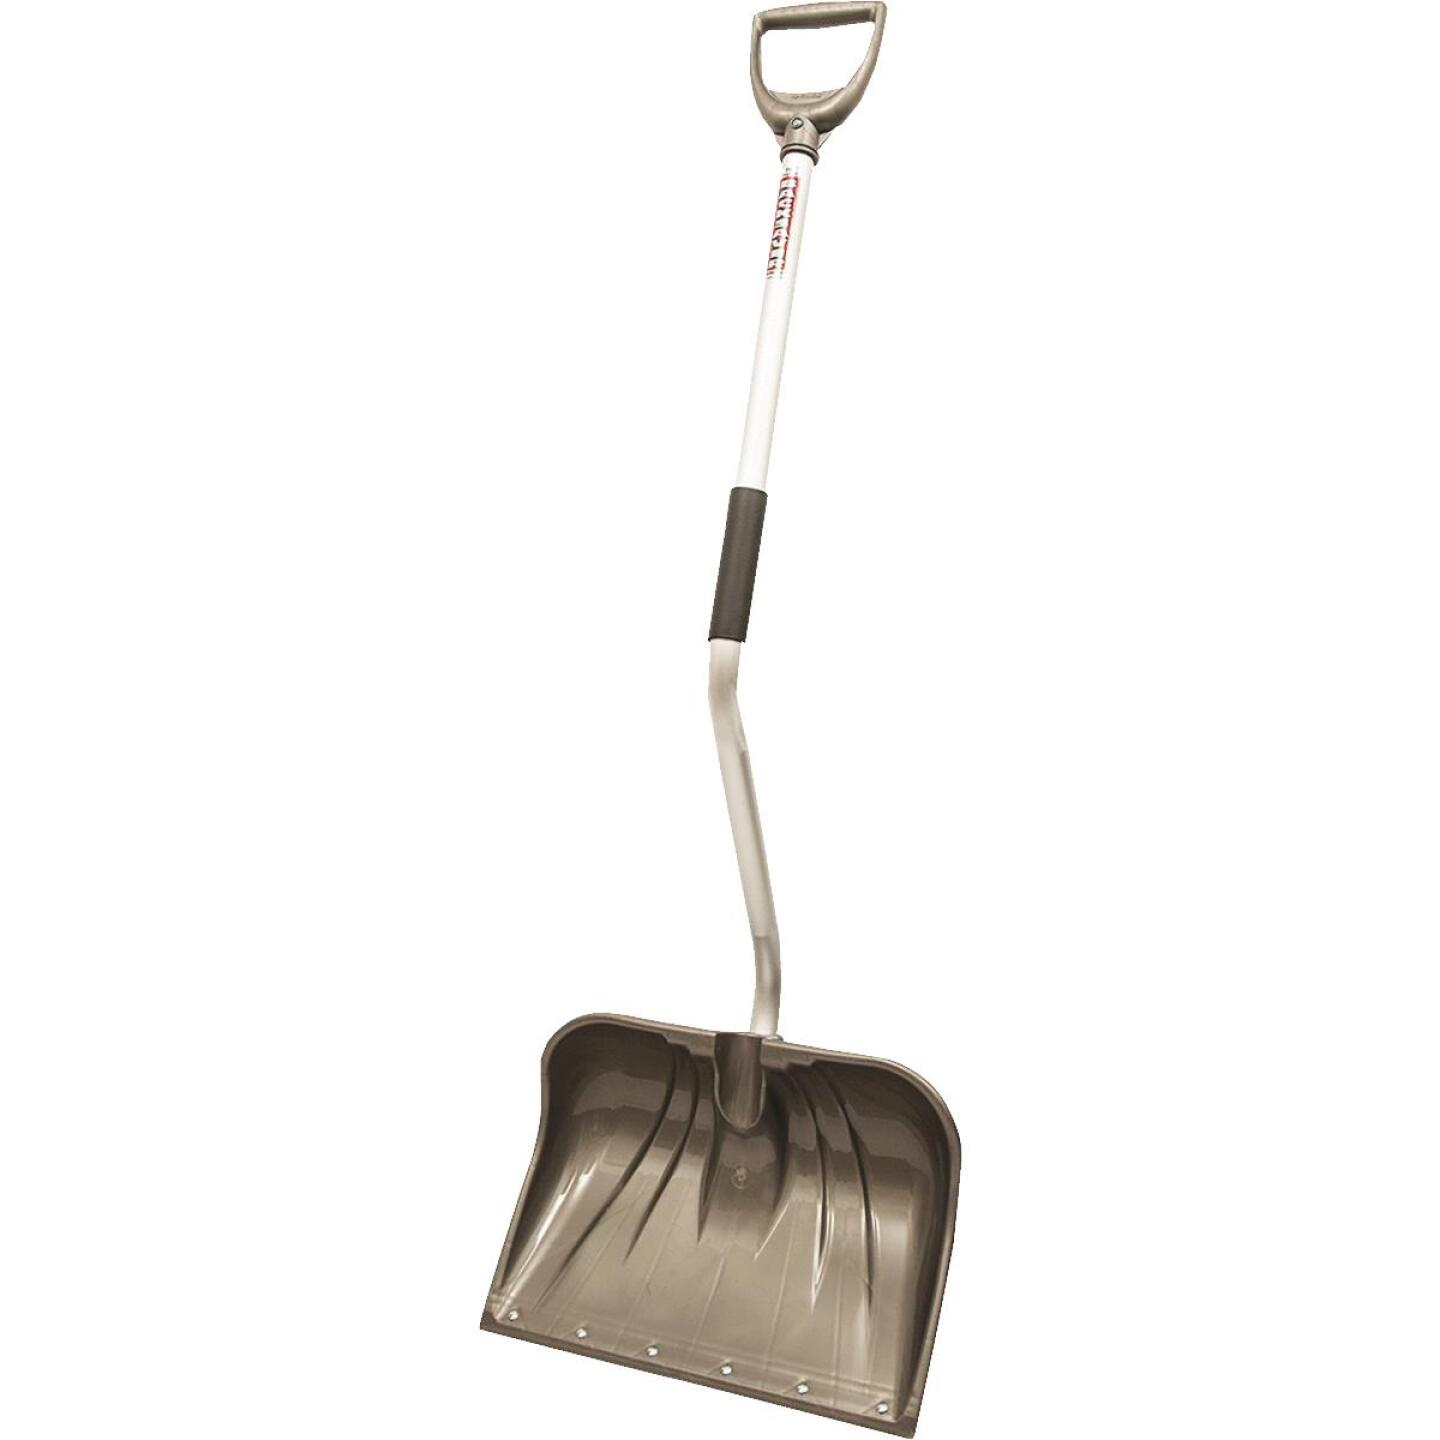 Rugg Back-Saver Lite-Wate 18 In. Poly Snow Shovel with 42.5 In. Aluminum Handle Image 3